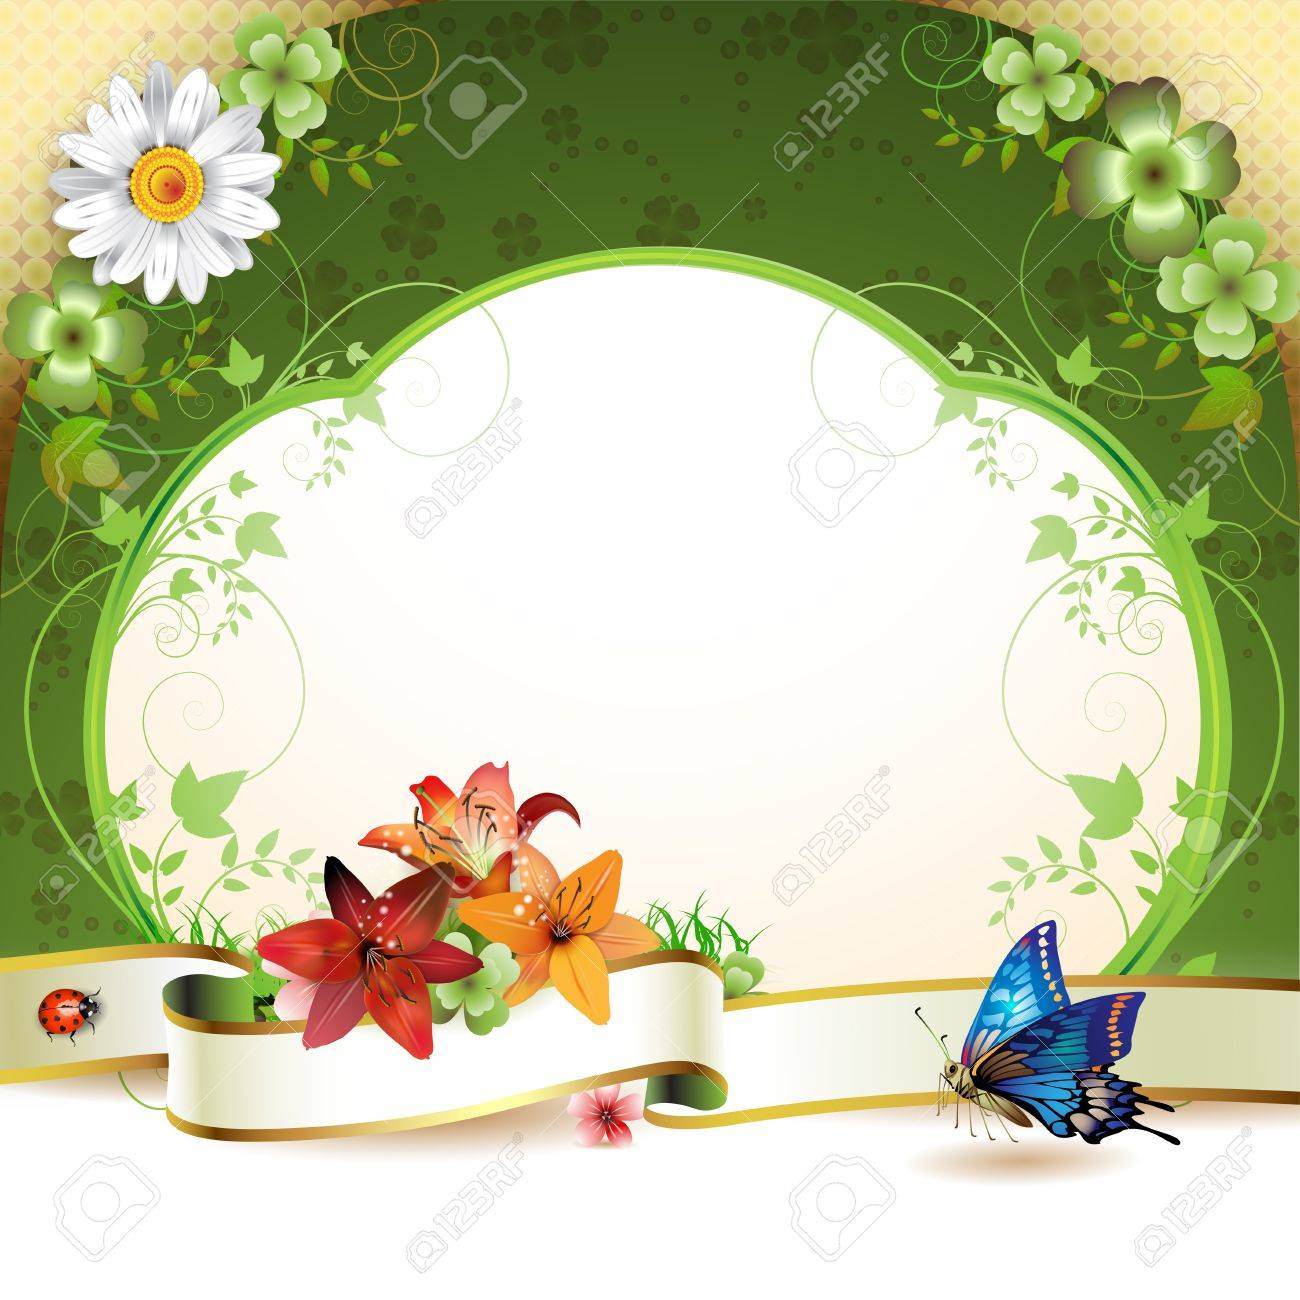 Banner with flowers and butterflies Stock Vector - 9504751